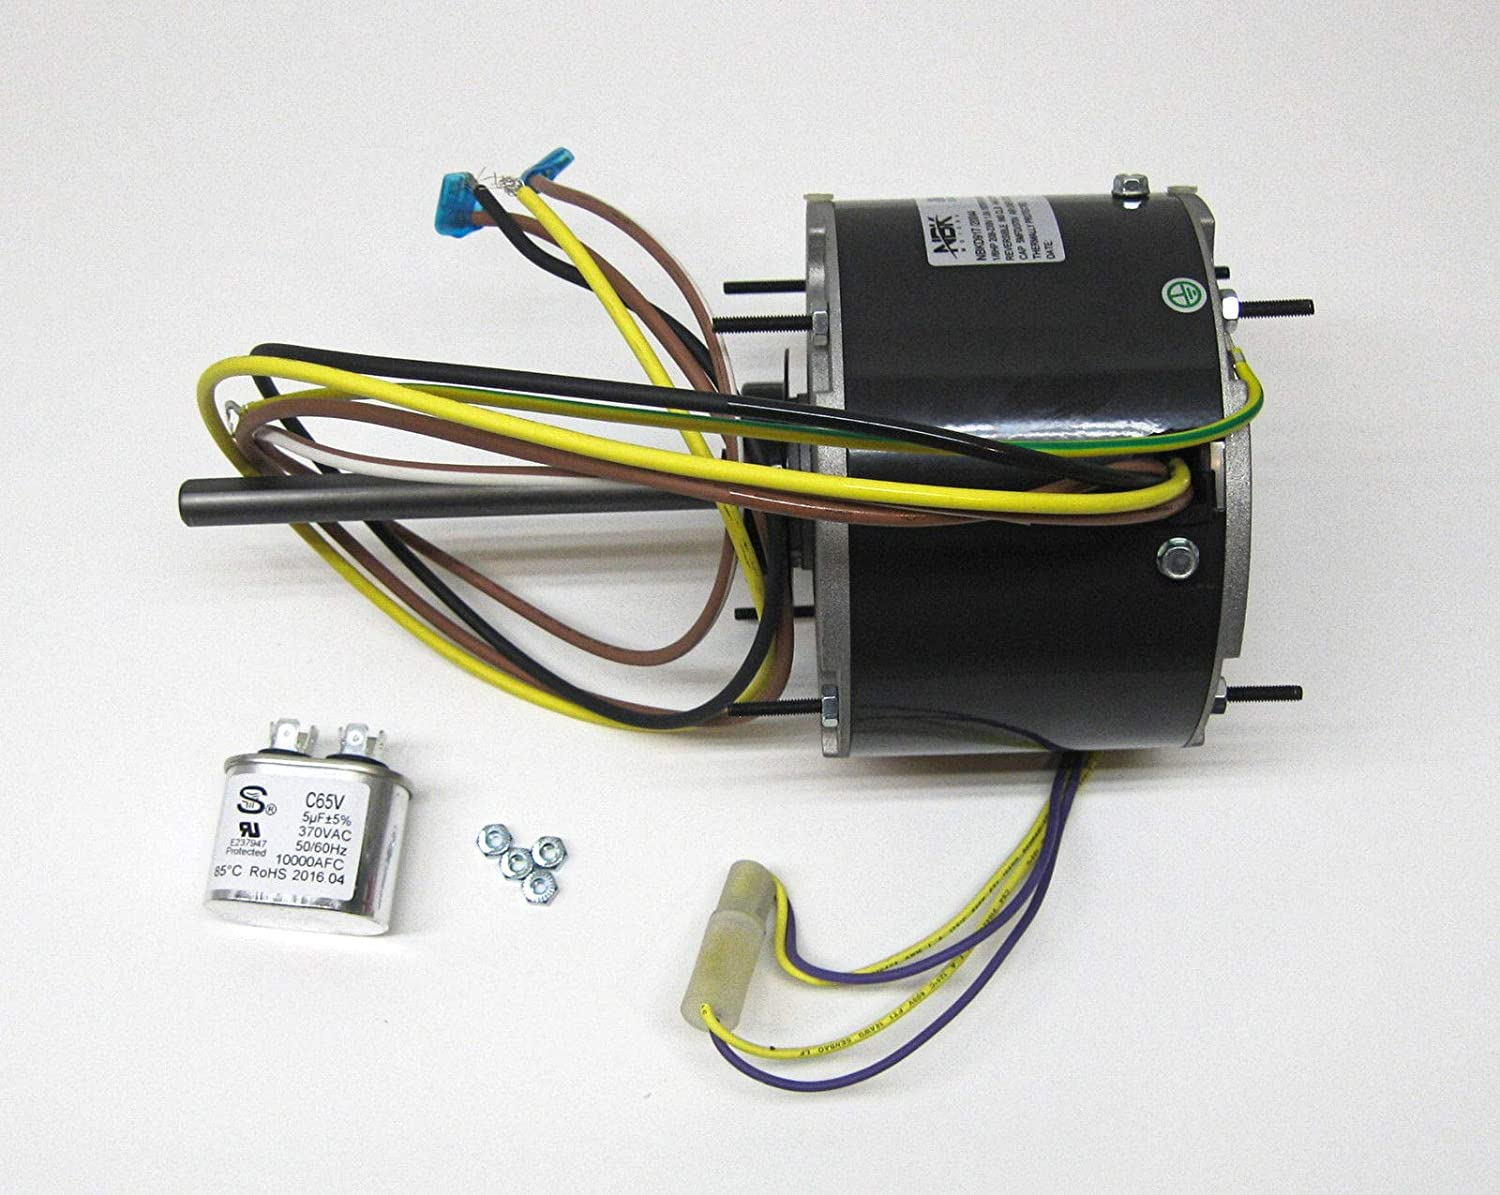 Ac Condenser Fan Motor Wiring Diagram from images-na.ssl-images-amazon.com